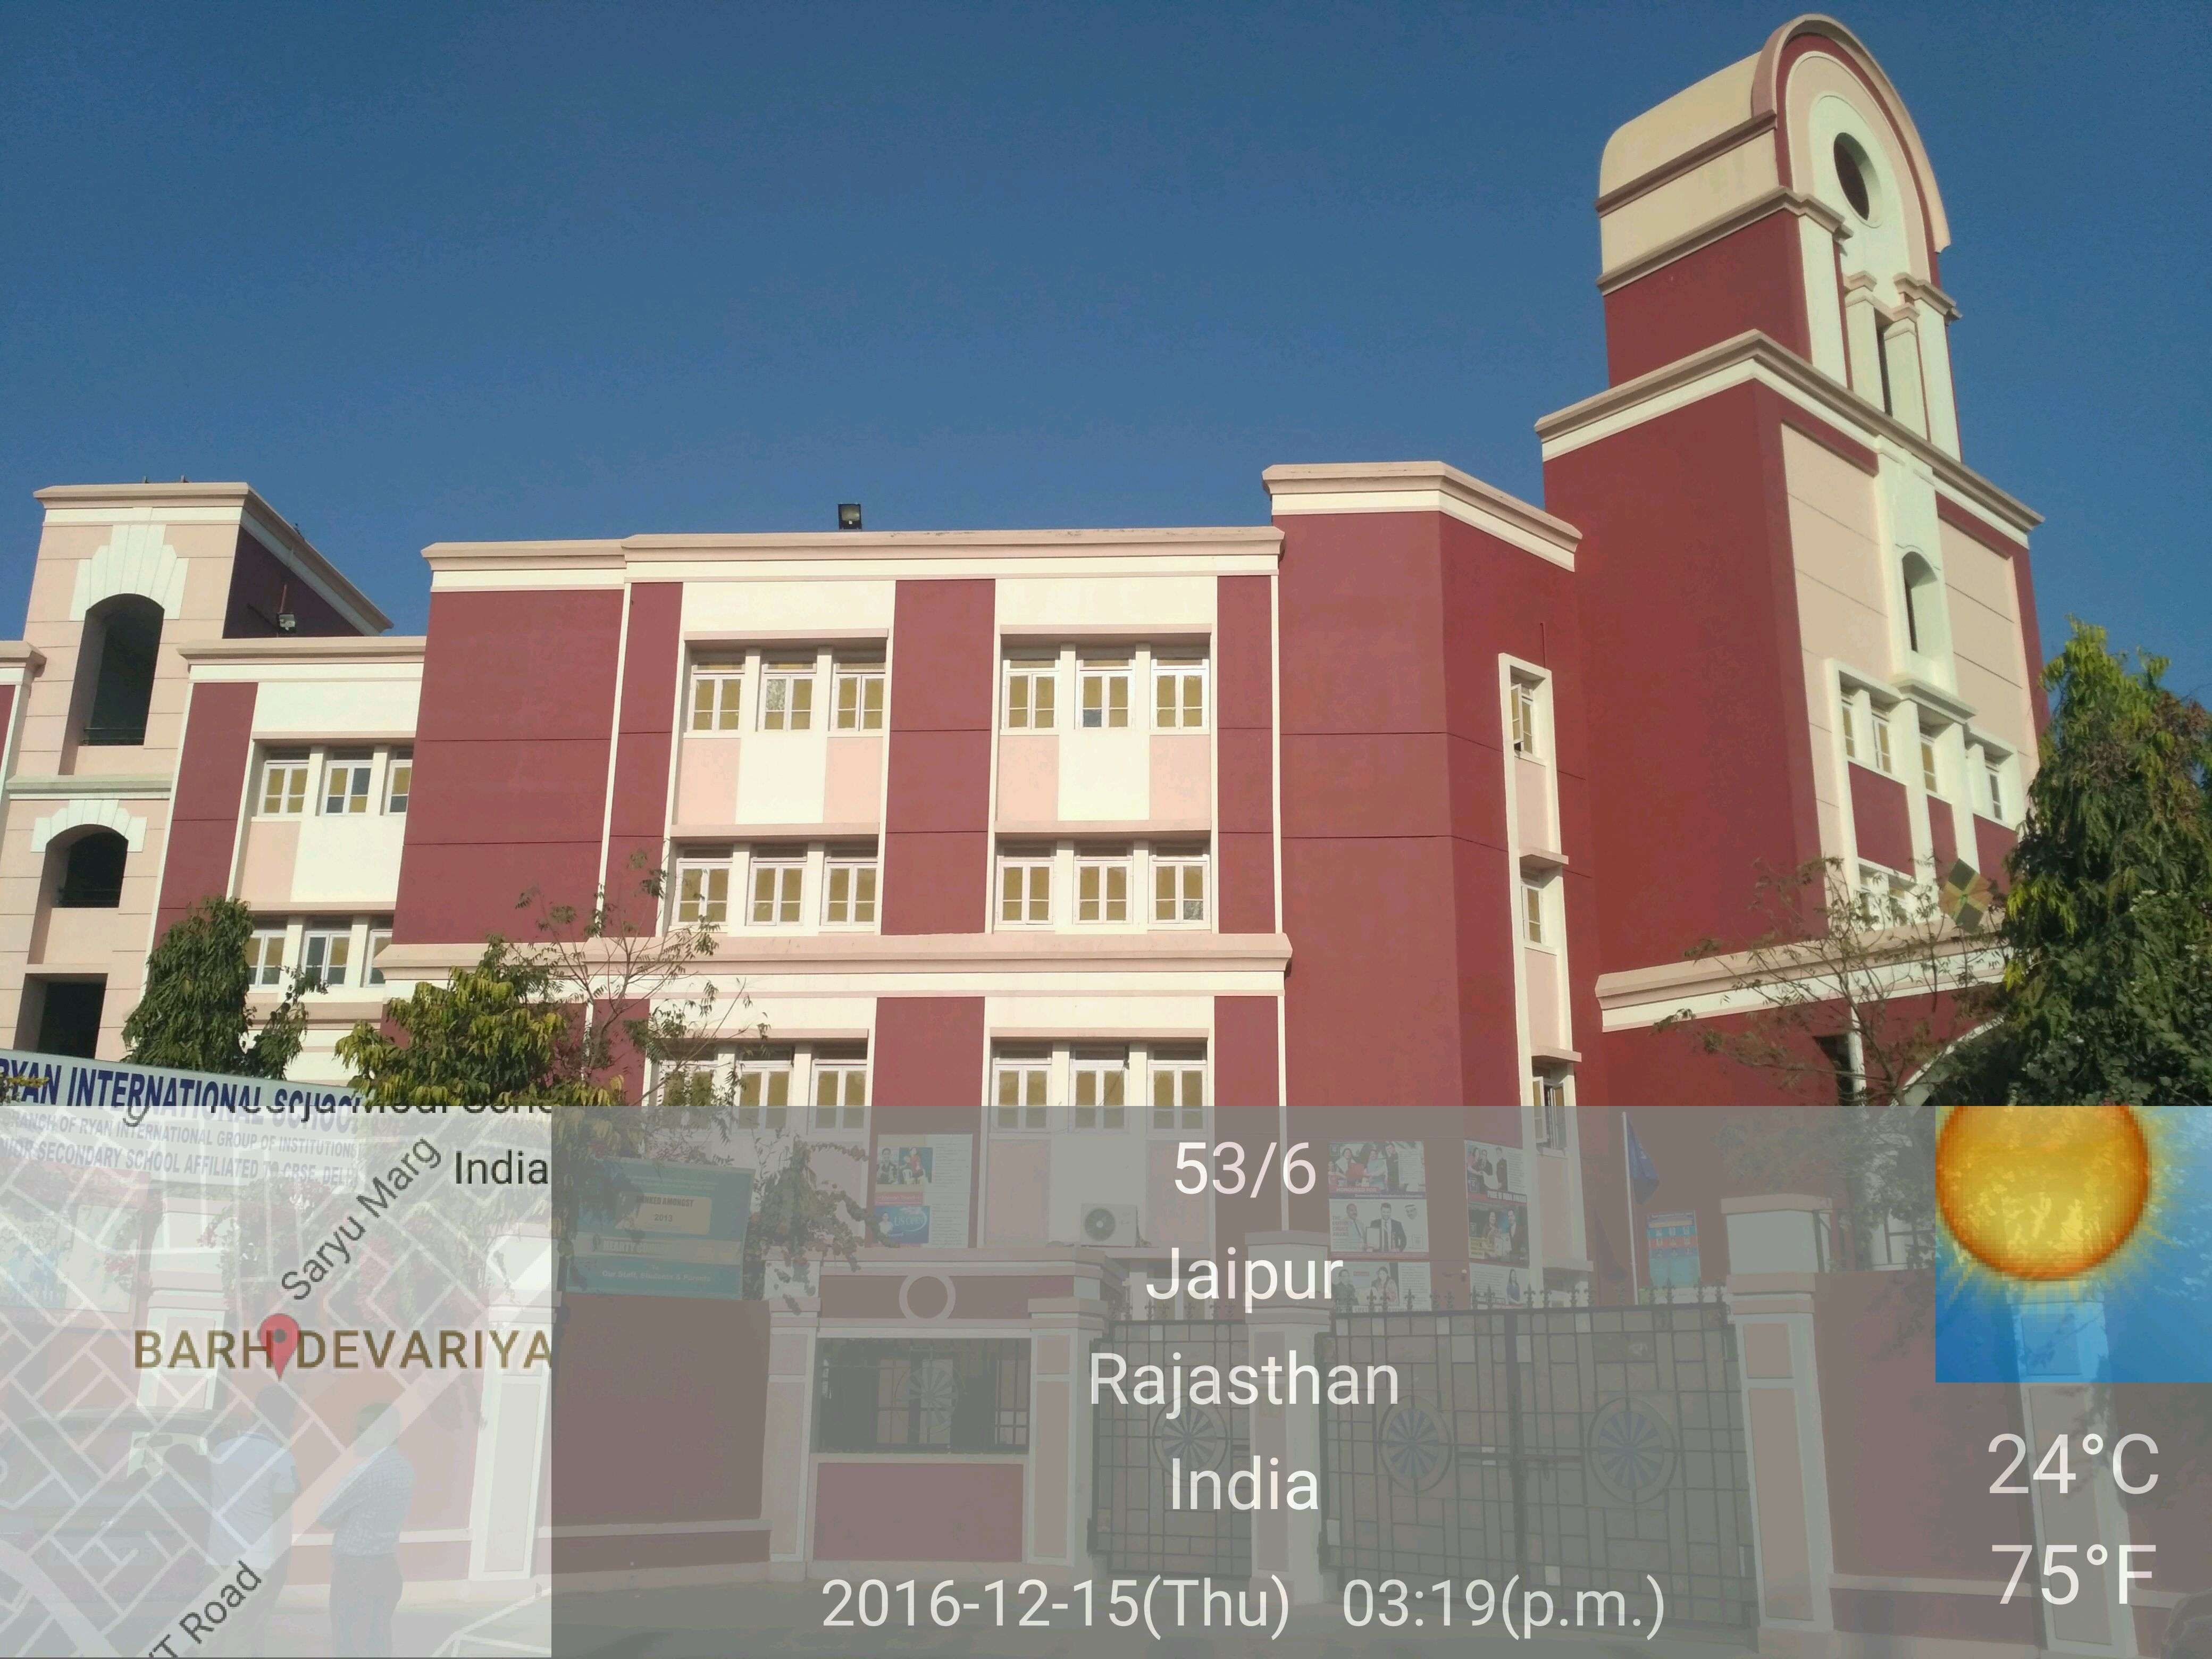 RYAN INTERNATIONAL SCHOOL KINGS ROAD NIRMAN NAGAR AJMER ROAD JAIPUR RAJASTHAN 1730151